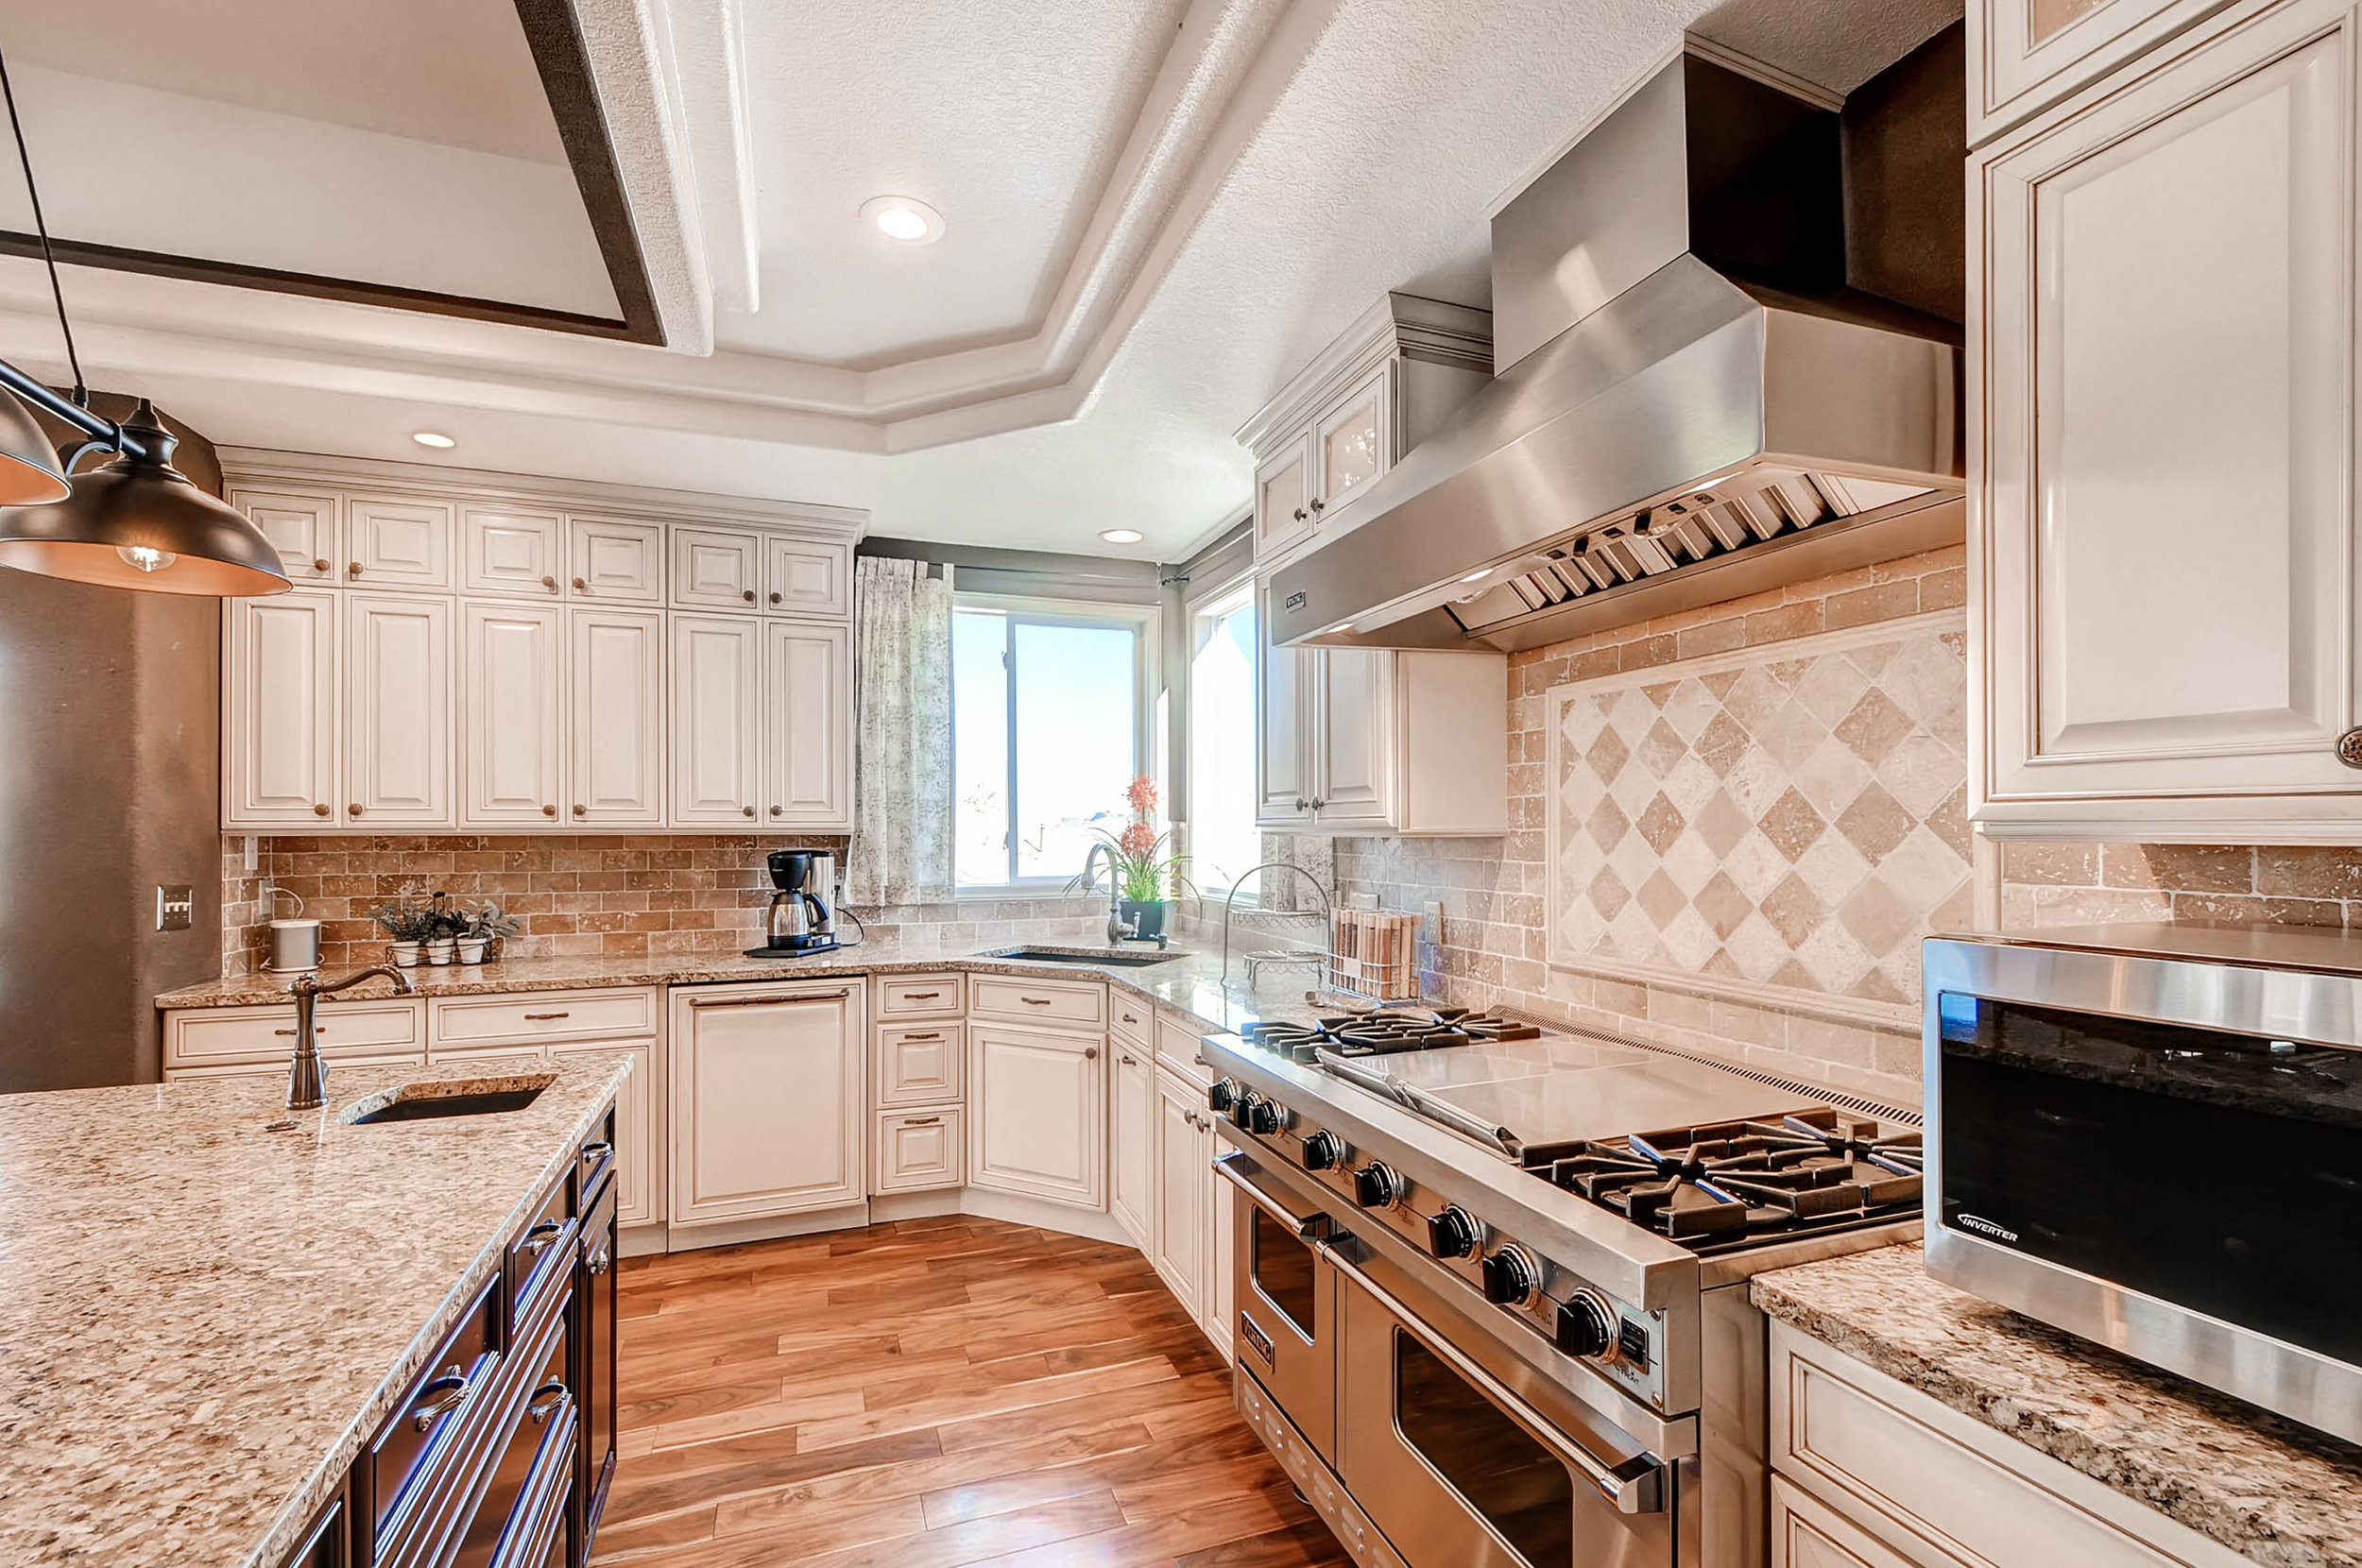 245 West Dr Golden CO 80403-print-008-1-Kitchen-2700x1793-300dpi.jpg